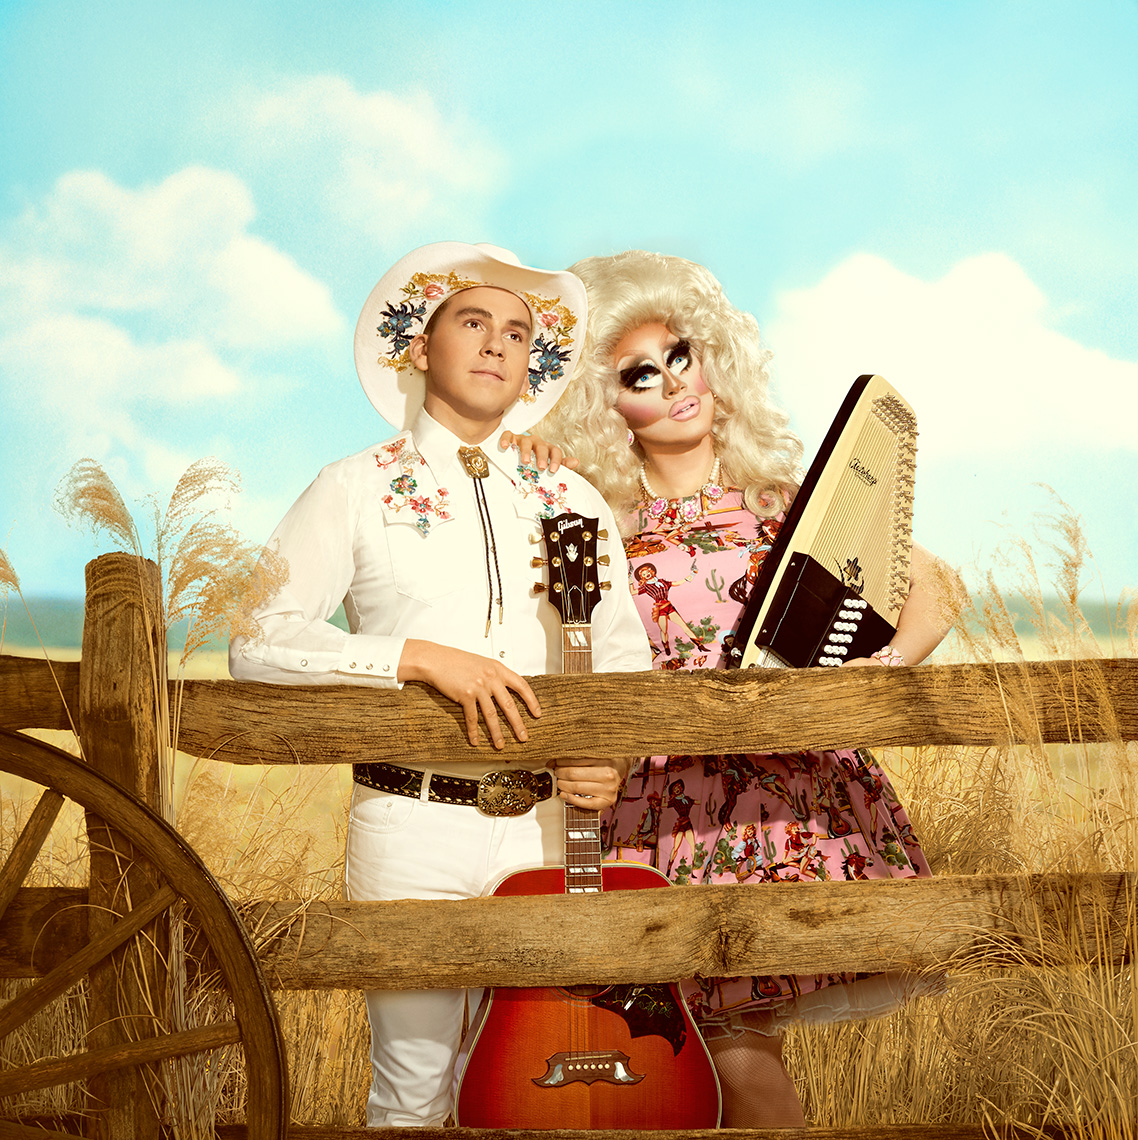 _Trixie_CountryAlbum_60217_3928_LPVersion_Final_web